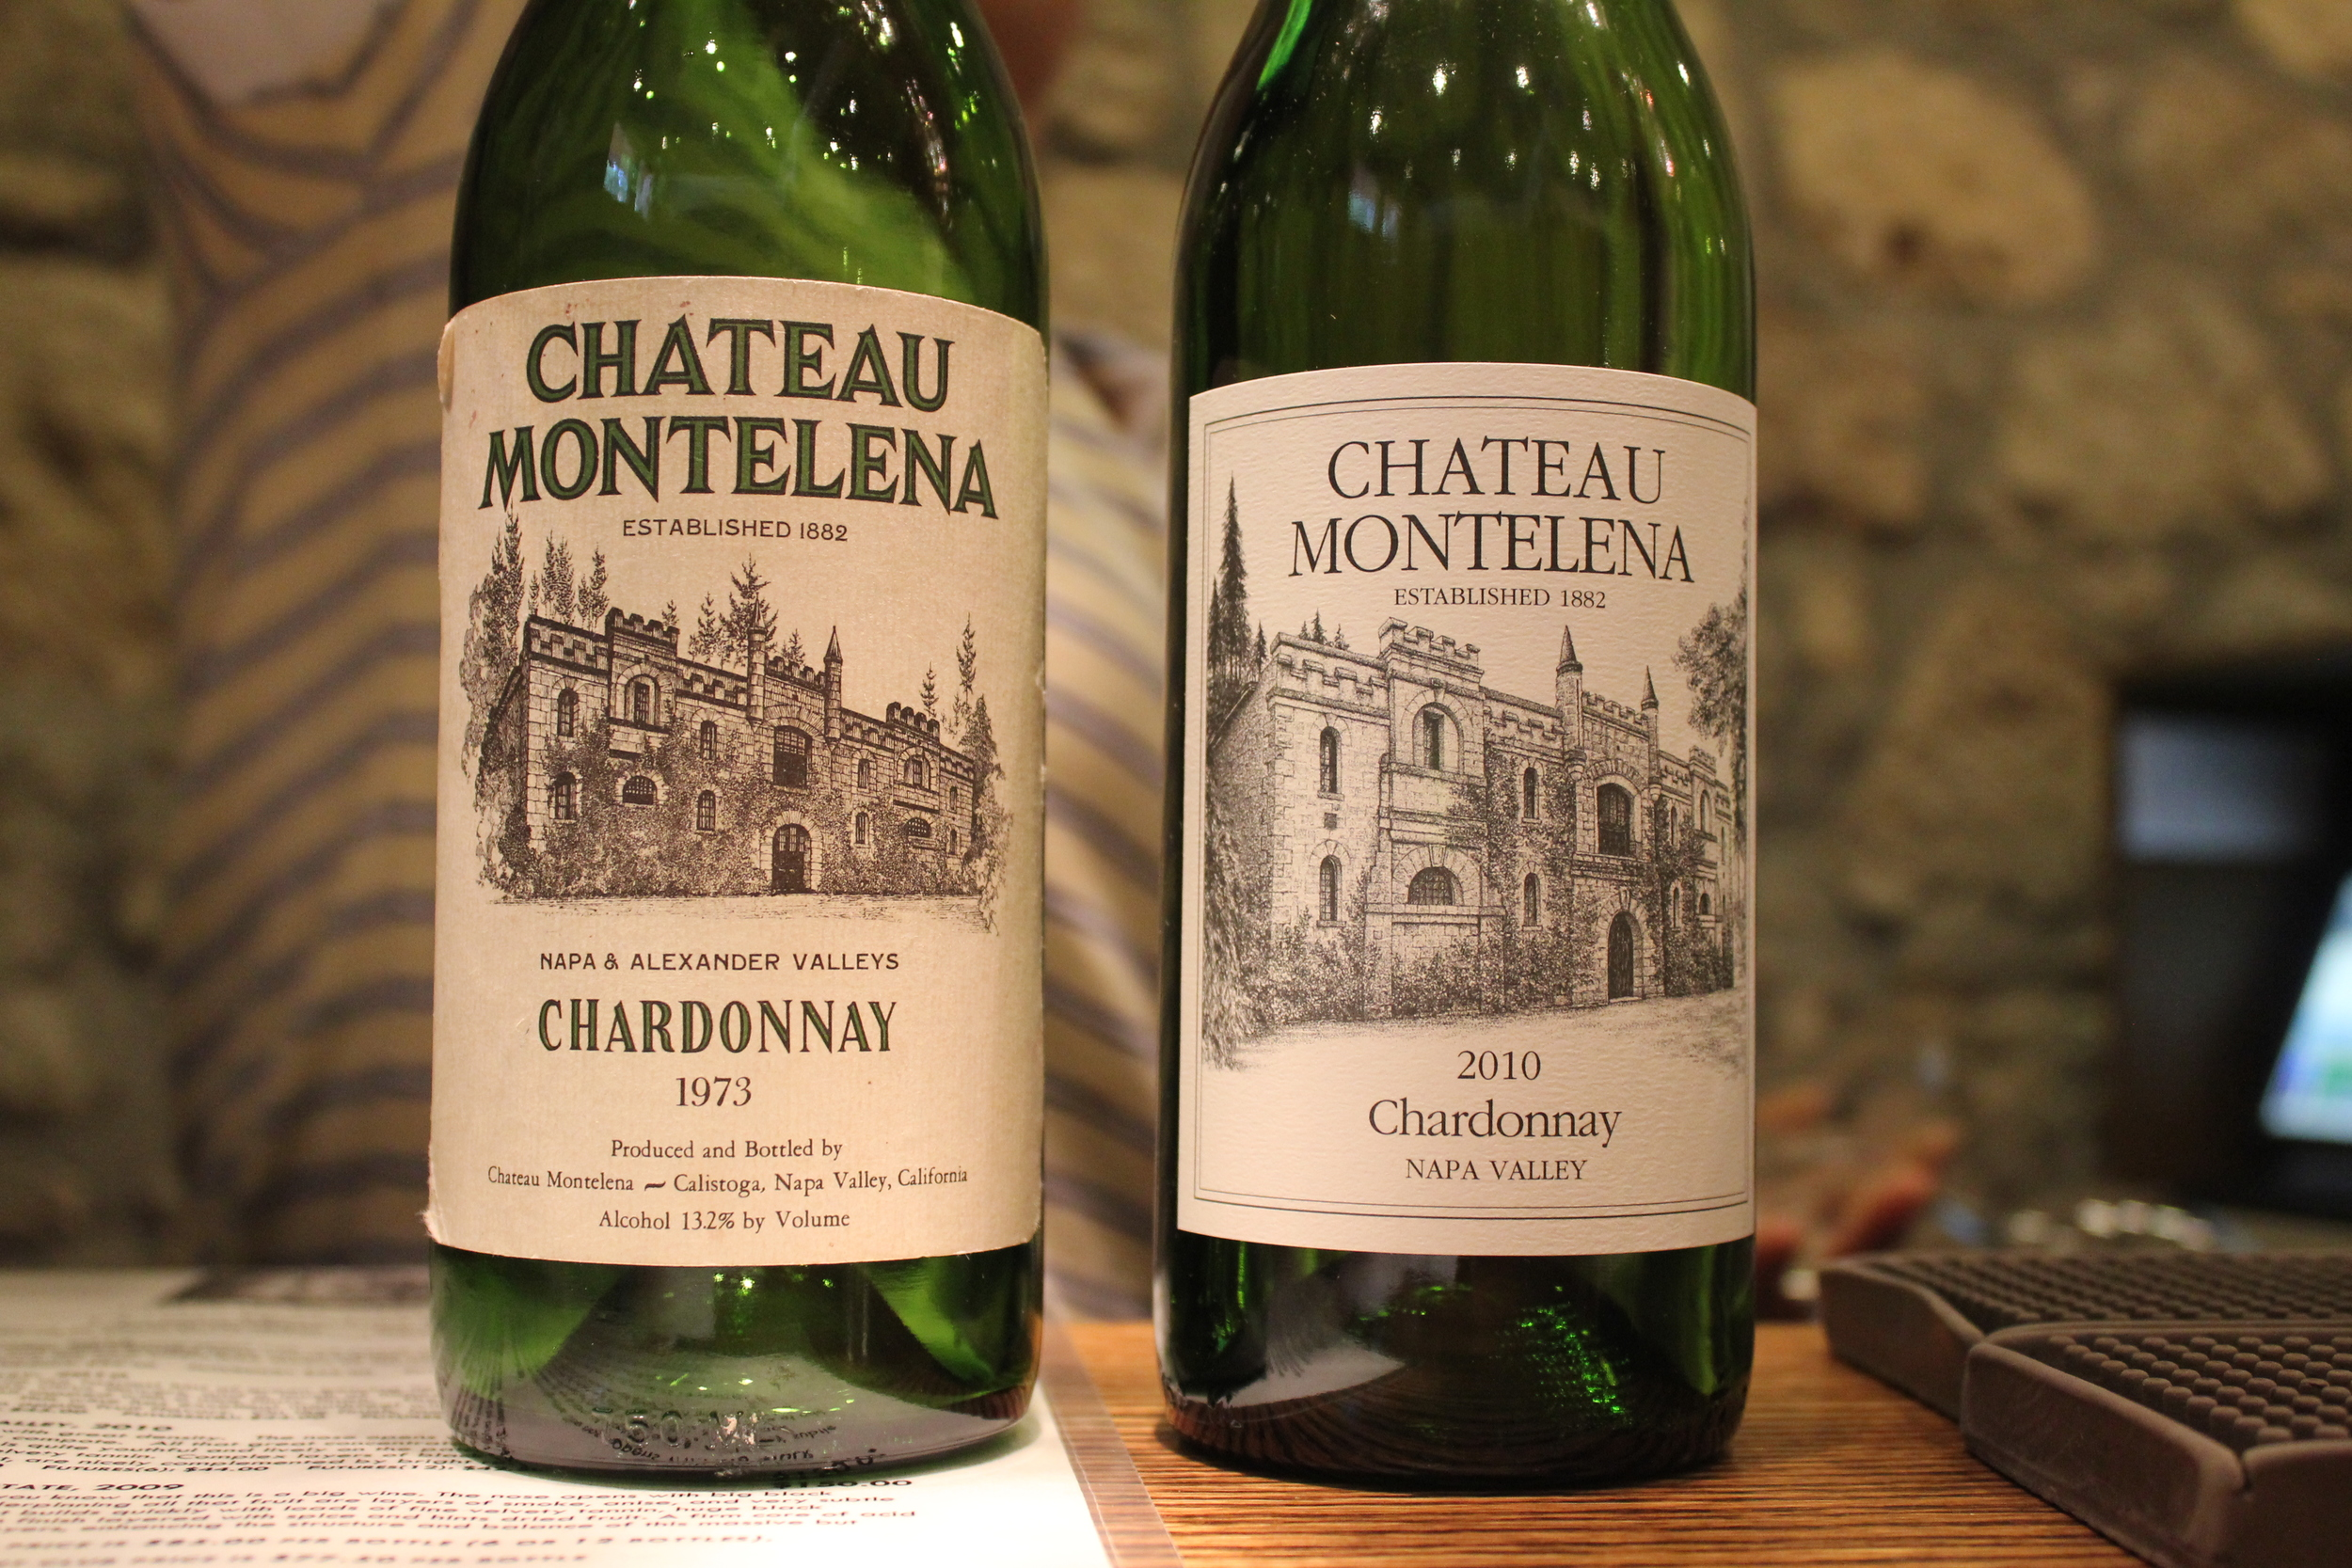 Chateau Montelena's Battle of Paris winning 1973 Chardonnay alongside the current 2010 release